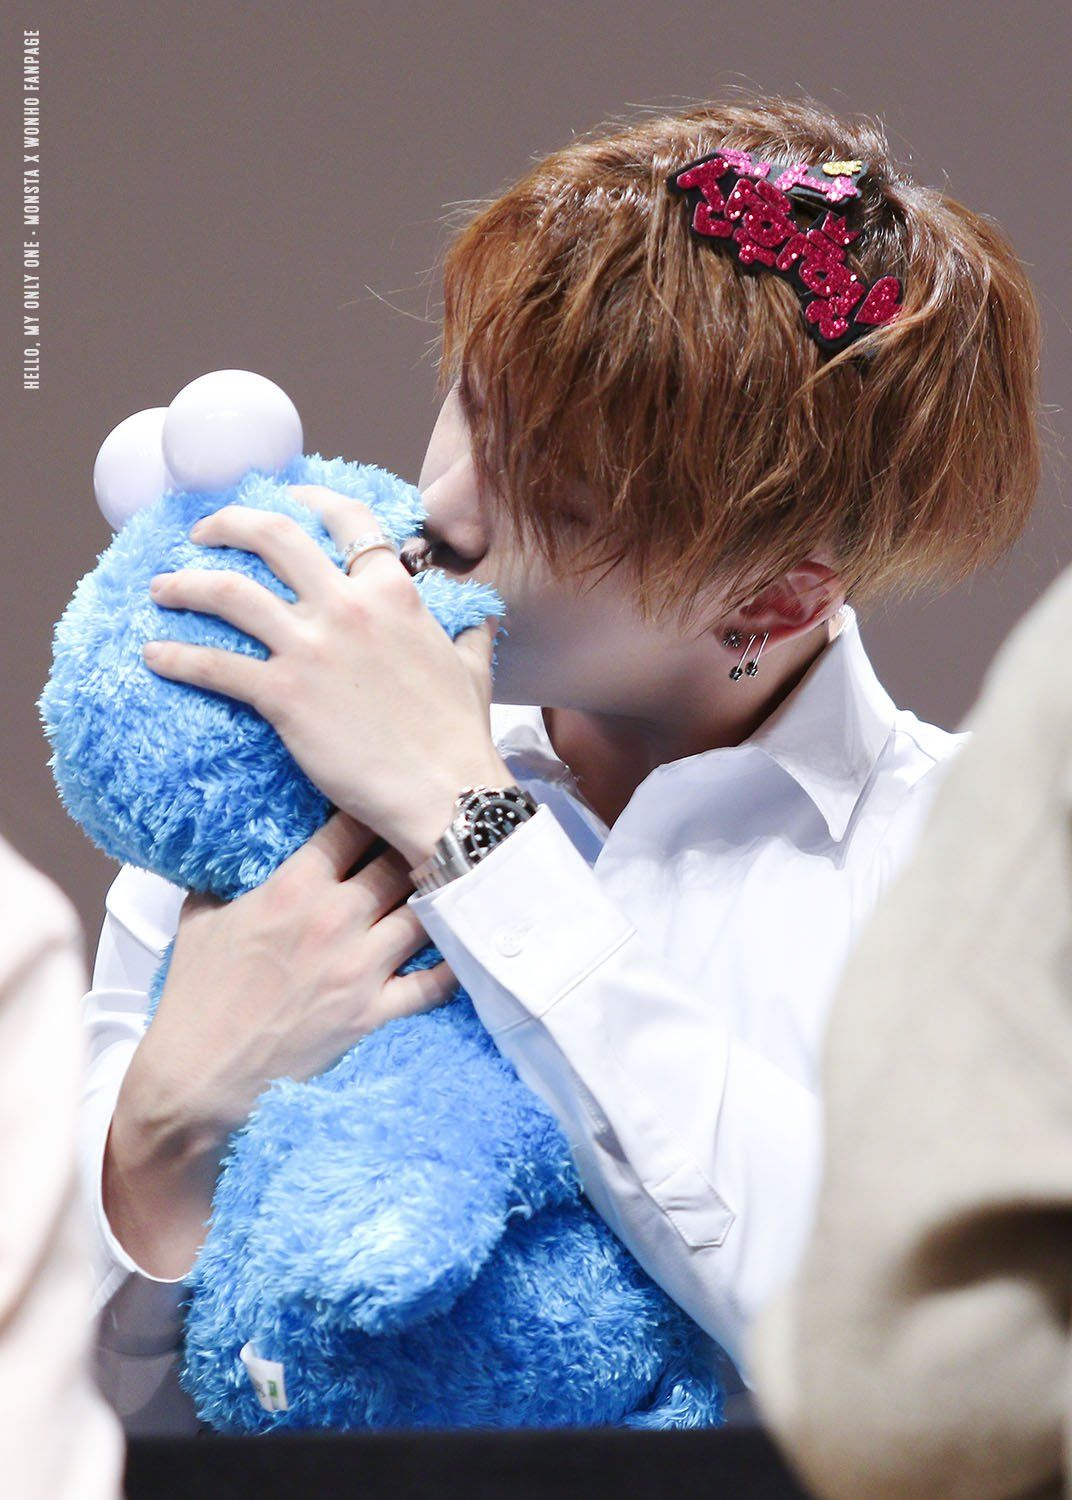 Wonho kissing cookie monster